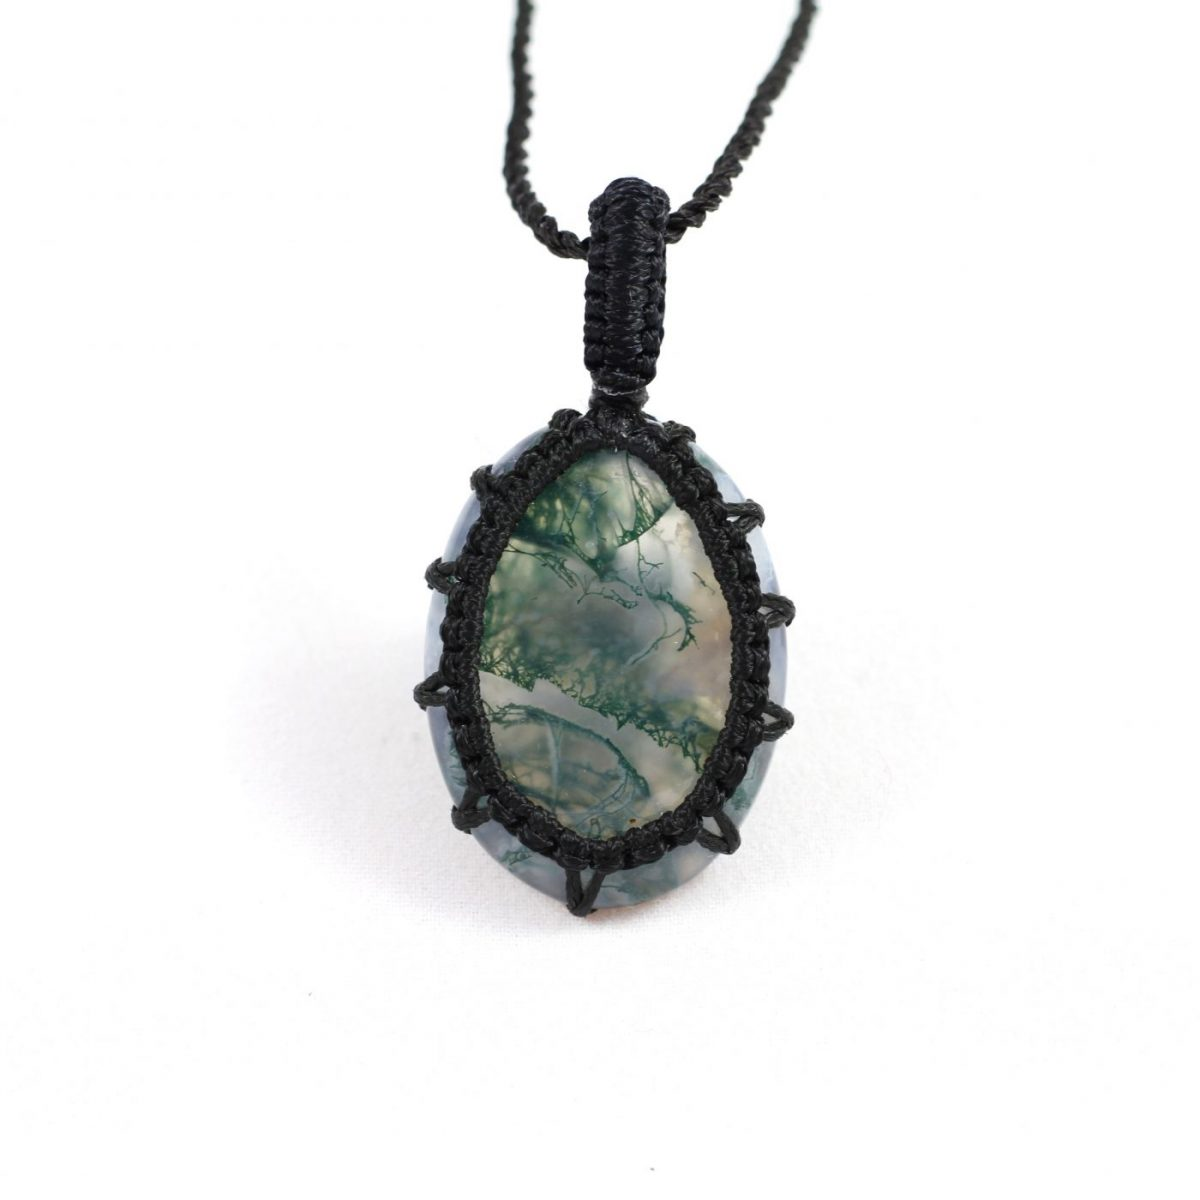 pin silver sterling edwardian moss agate necklace antique victorian